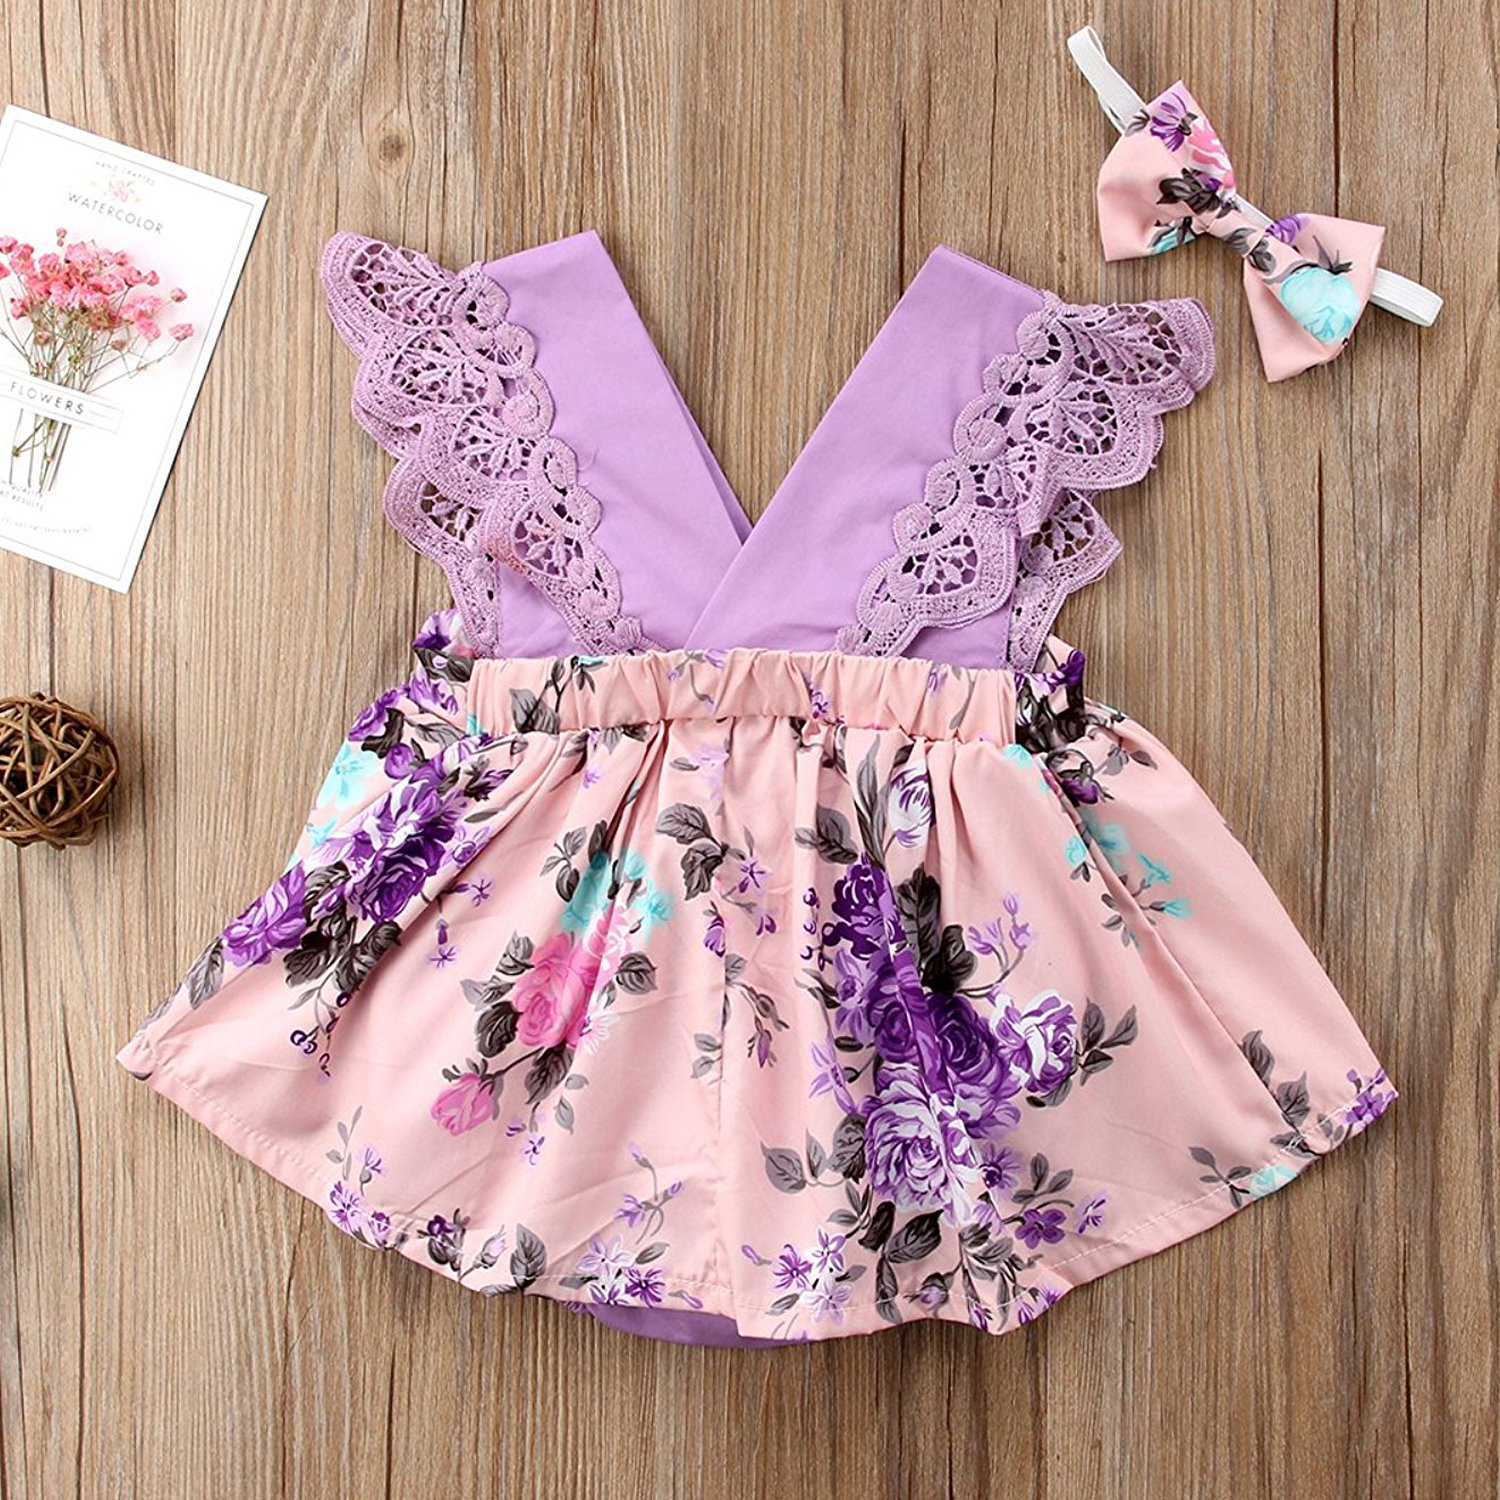 HappyMA Toddler Baby Girl Clothes Floral Dress Lace Ruffle Sleeveless Backless Skirt with Headband 2Pcs Outfit (Purple, 12-18 Months) by HappyMA (Image #3)